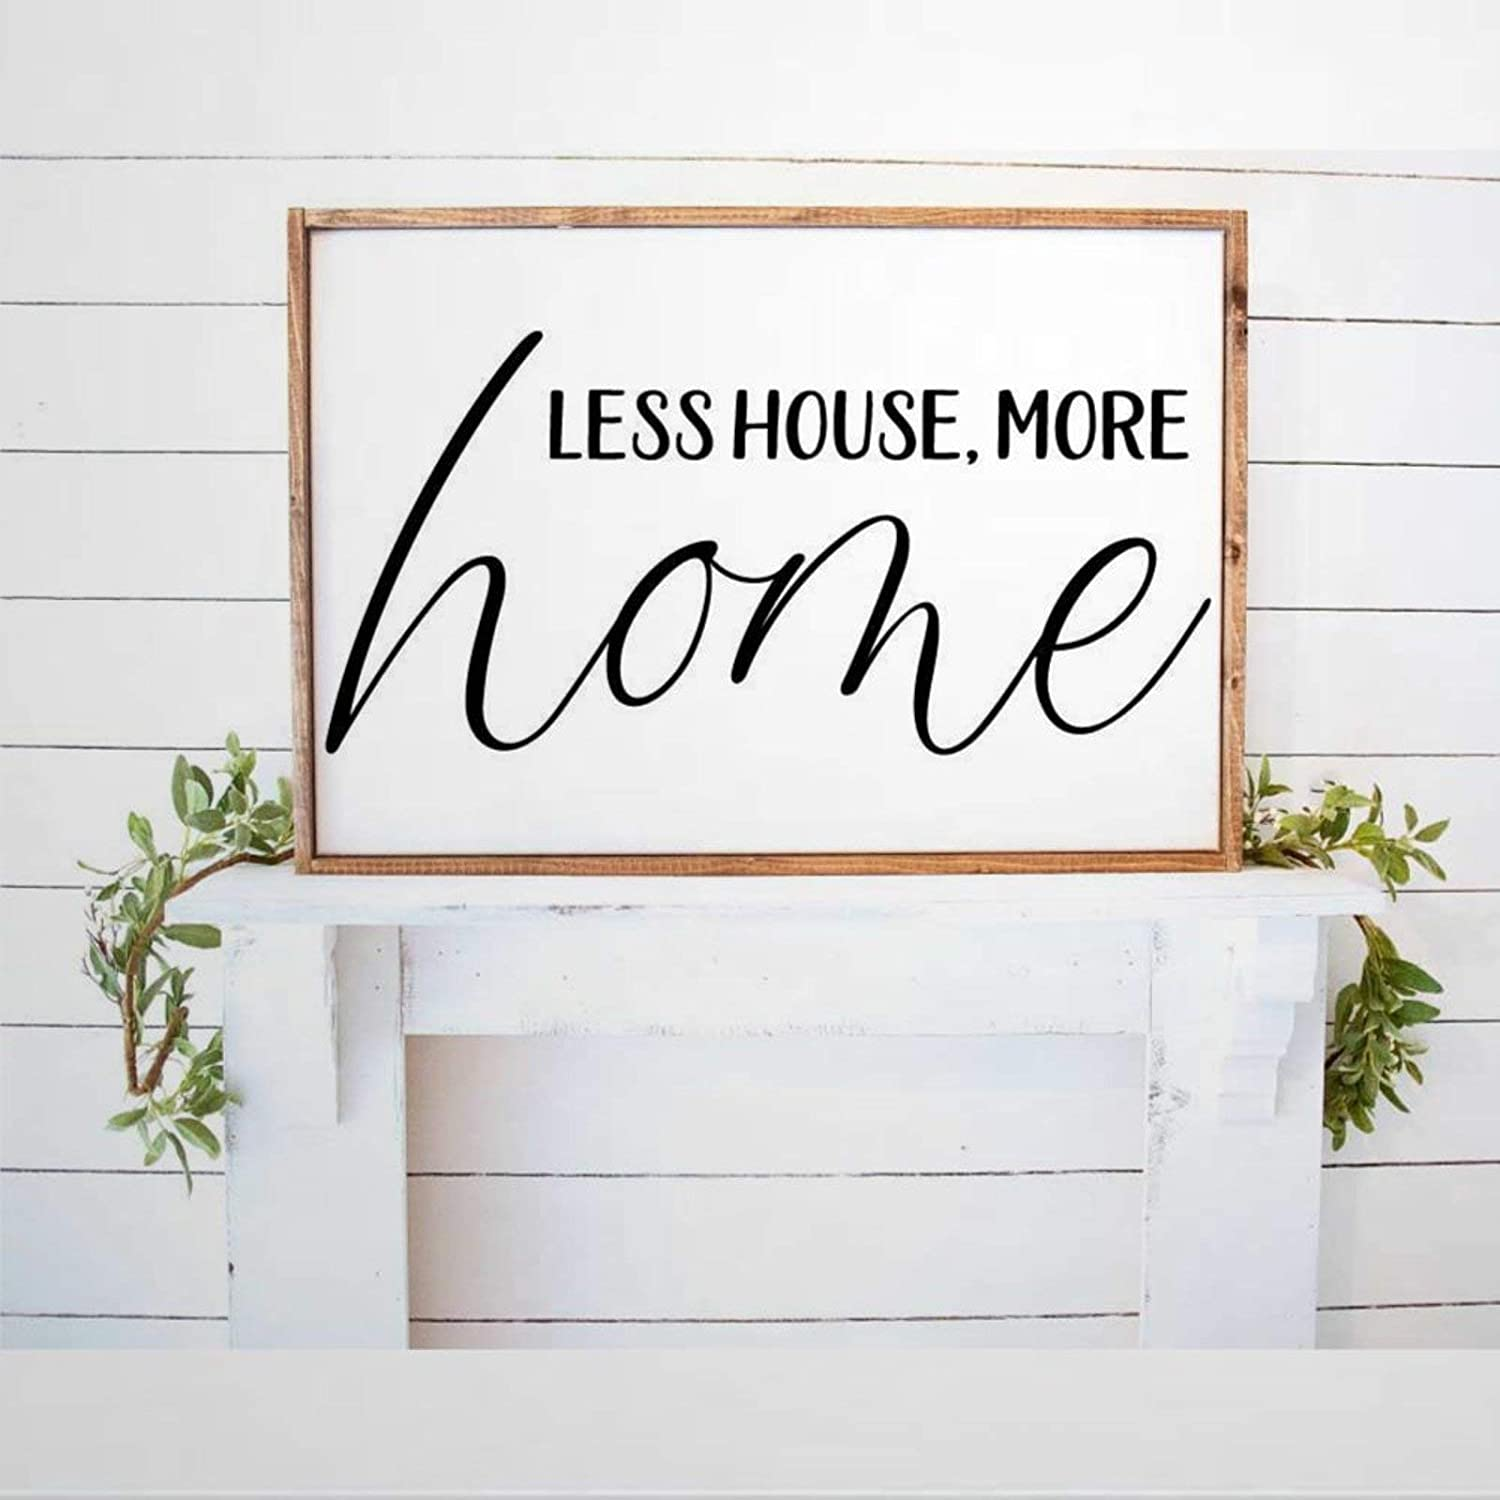 BYRON HOYLE Less House More Home Framed Wood Sign, Wooden Wall Hanging Art, Inspirational Farmhouse Wall Plaque, Rustic Home Decor for Nursery, Porch, Gallery Wall, Housewarming